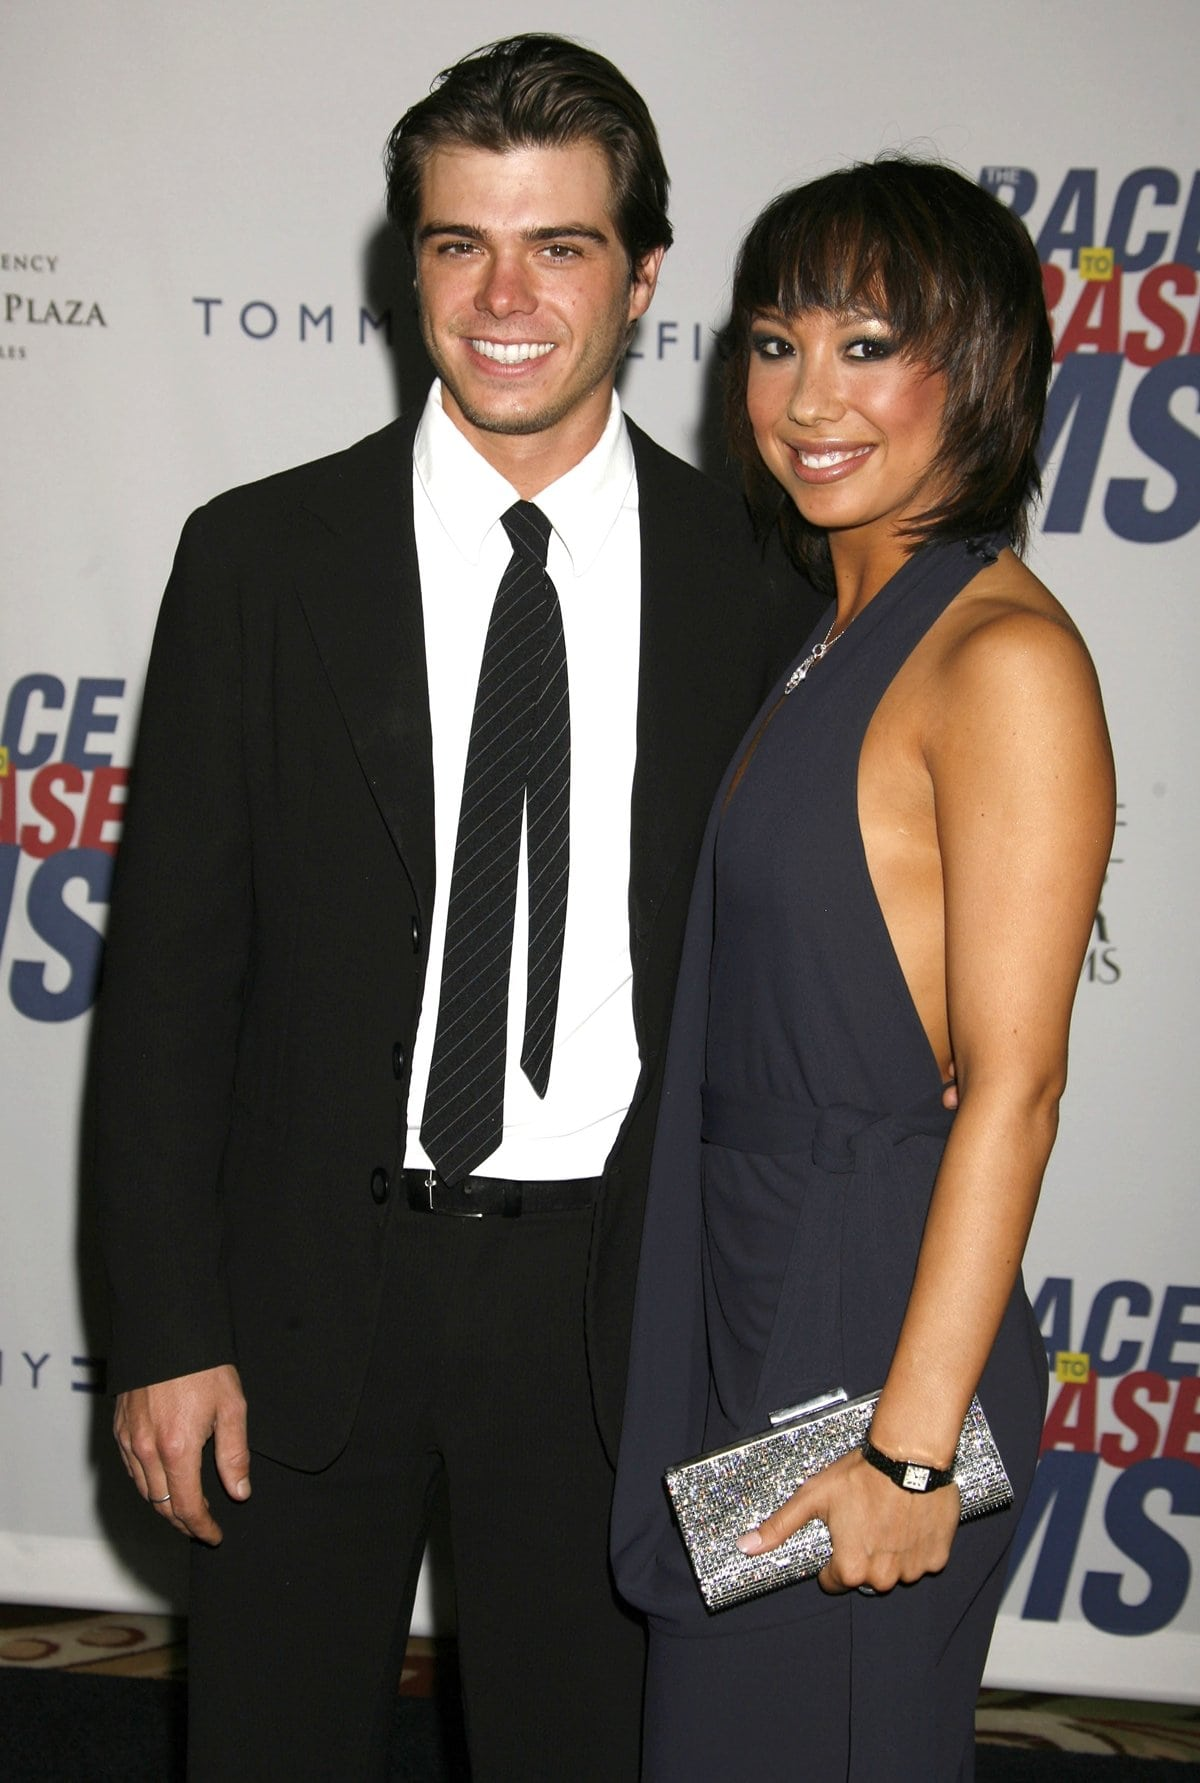 Matthew Lawrence and Cheryl Burke were introduced in 2007